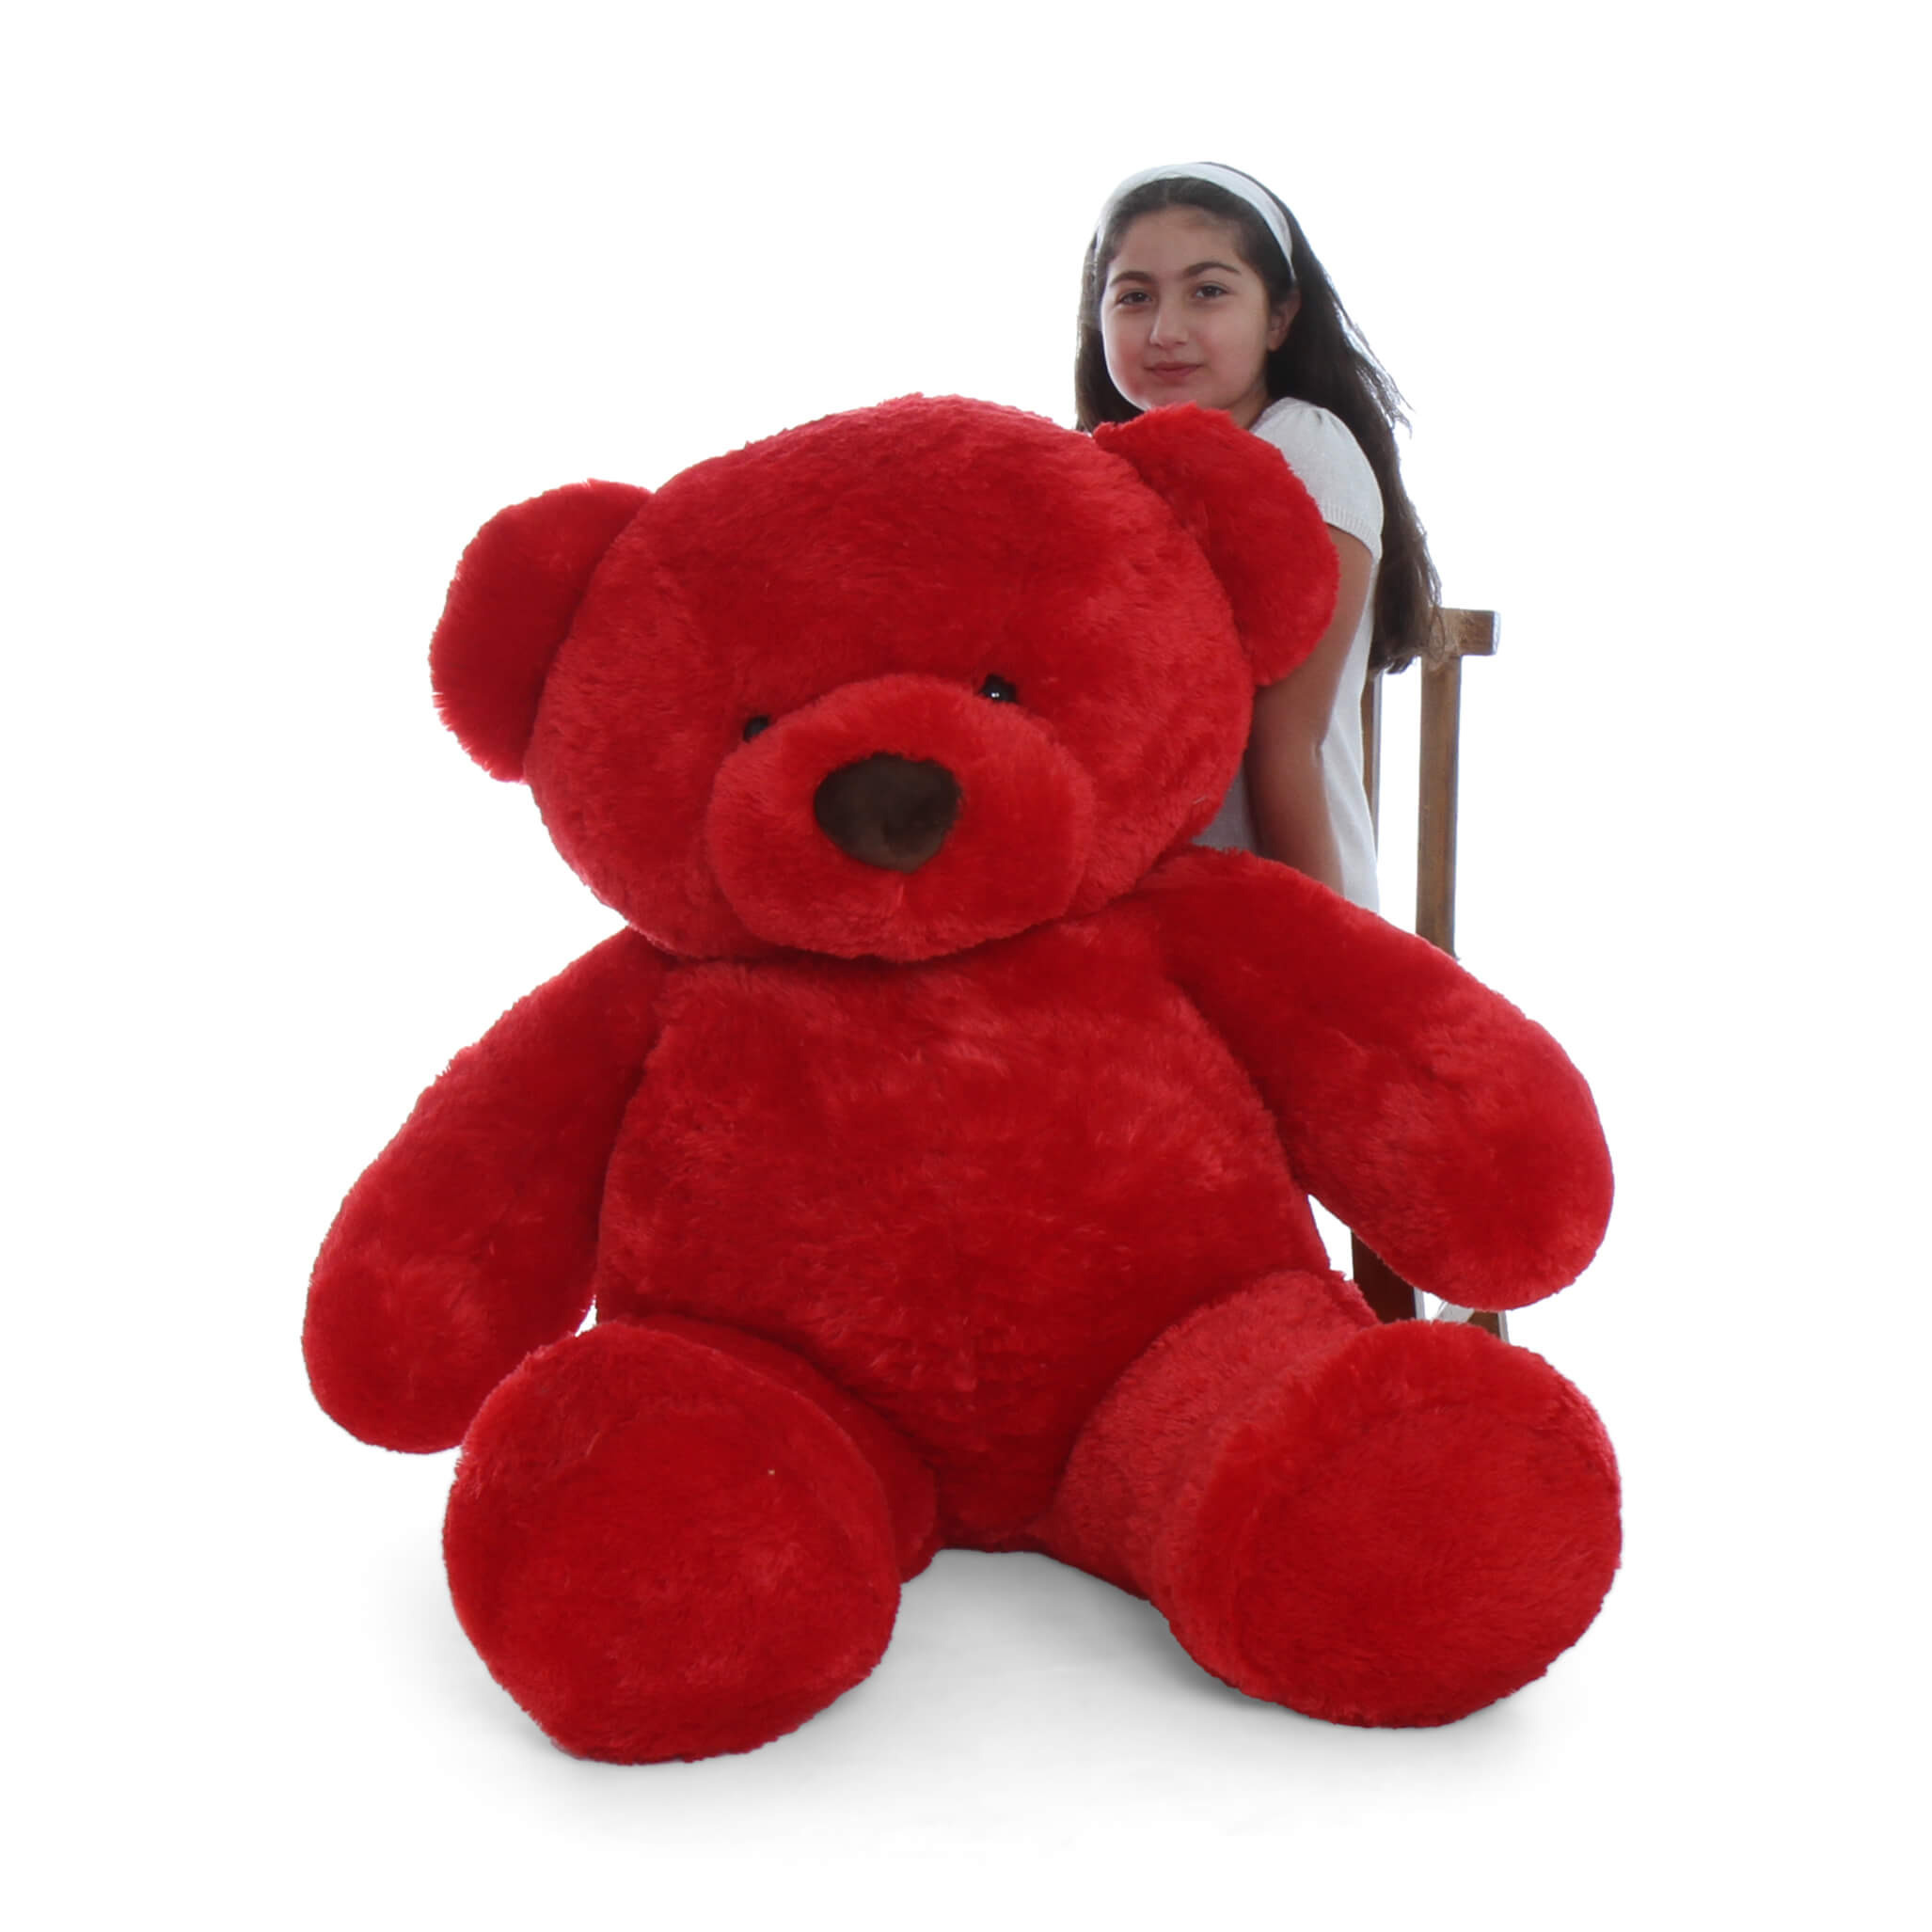 big-red-teddy-bear-best-plush-gift-riley-chubs-60in-1.jpg